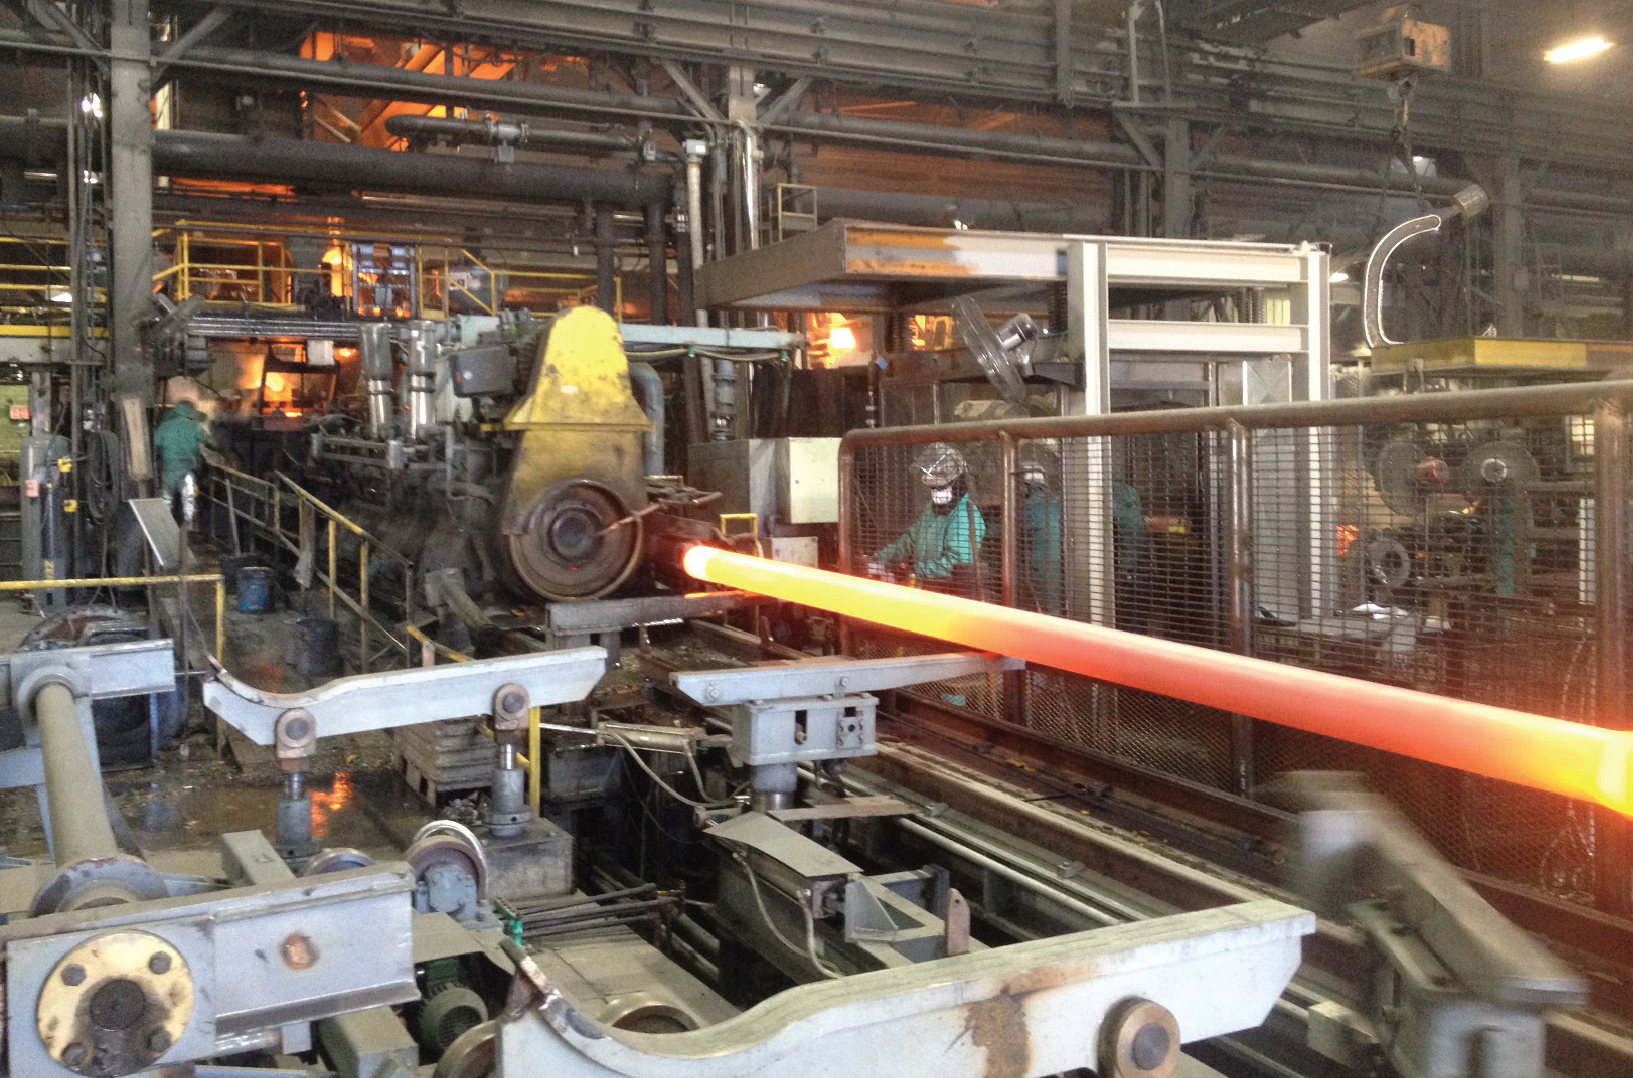 Pac States New Pipe Casting Machine & Pacific States: Cleaner and Even More Efficient | McWane Inc.